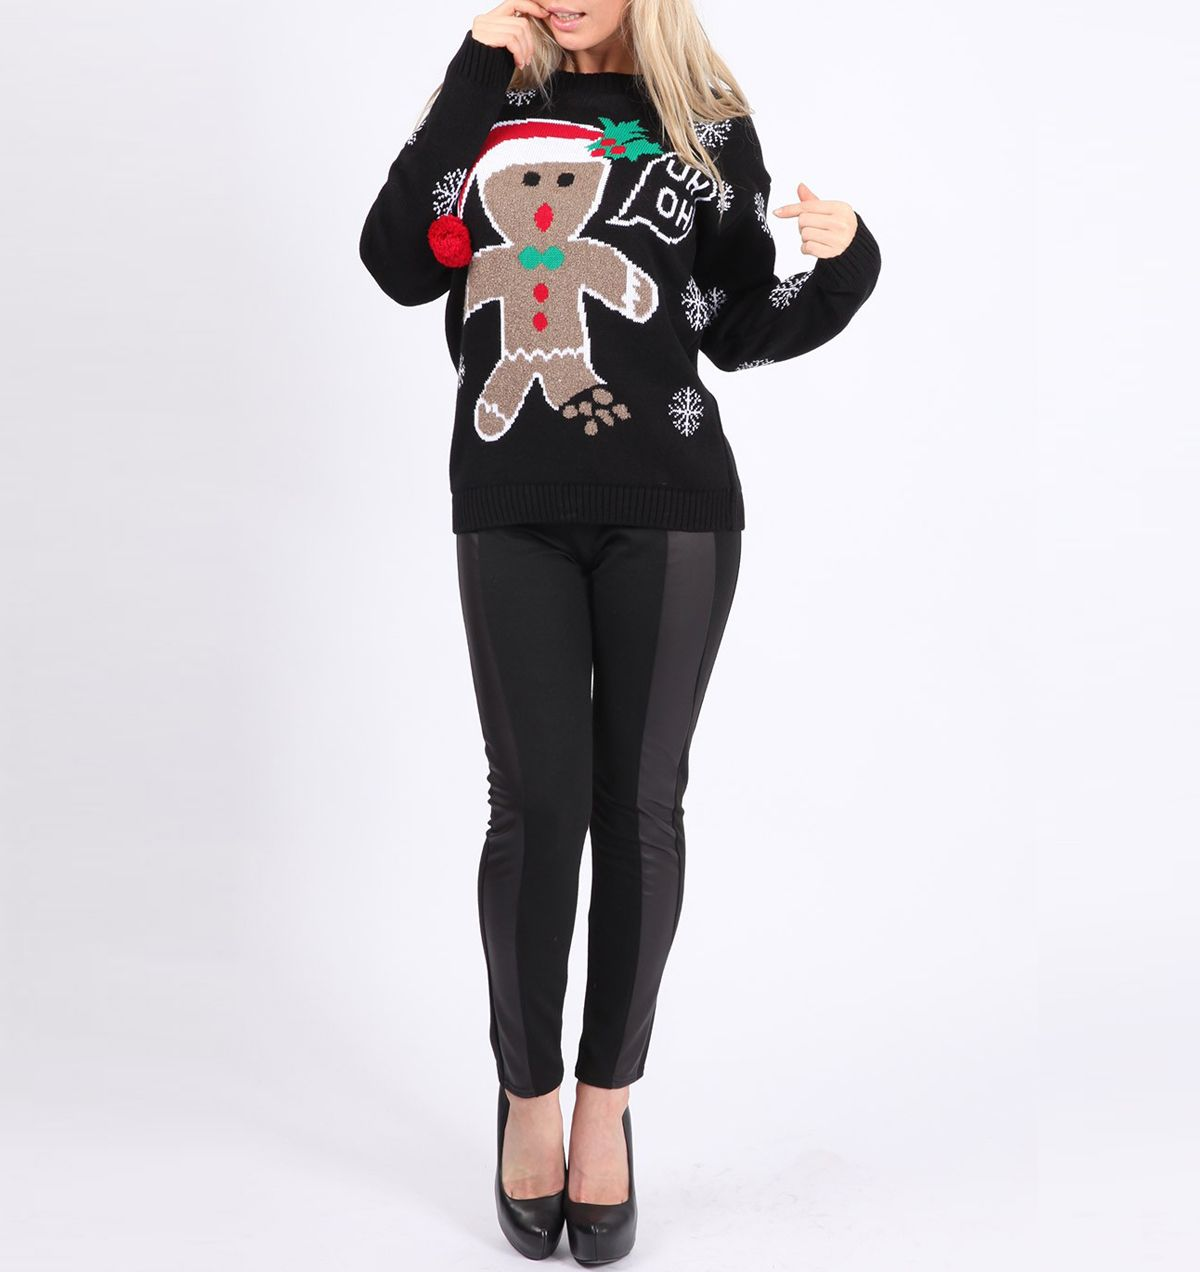 Gingerbread Man Ugly Christmas Sweater Black $25.00 SHop: http://www ...